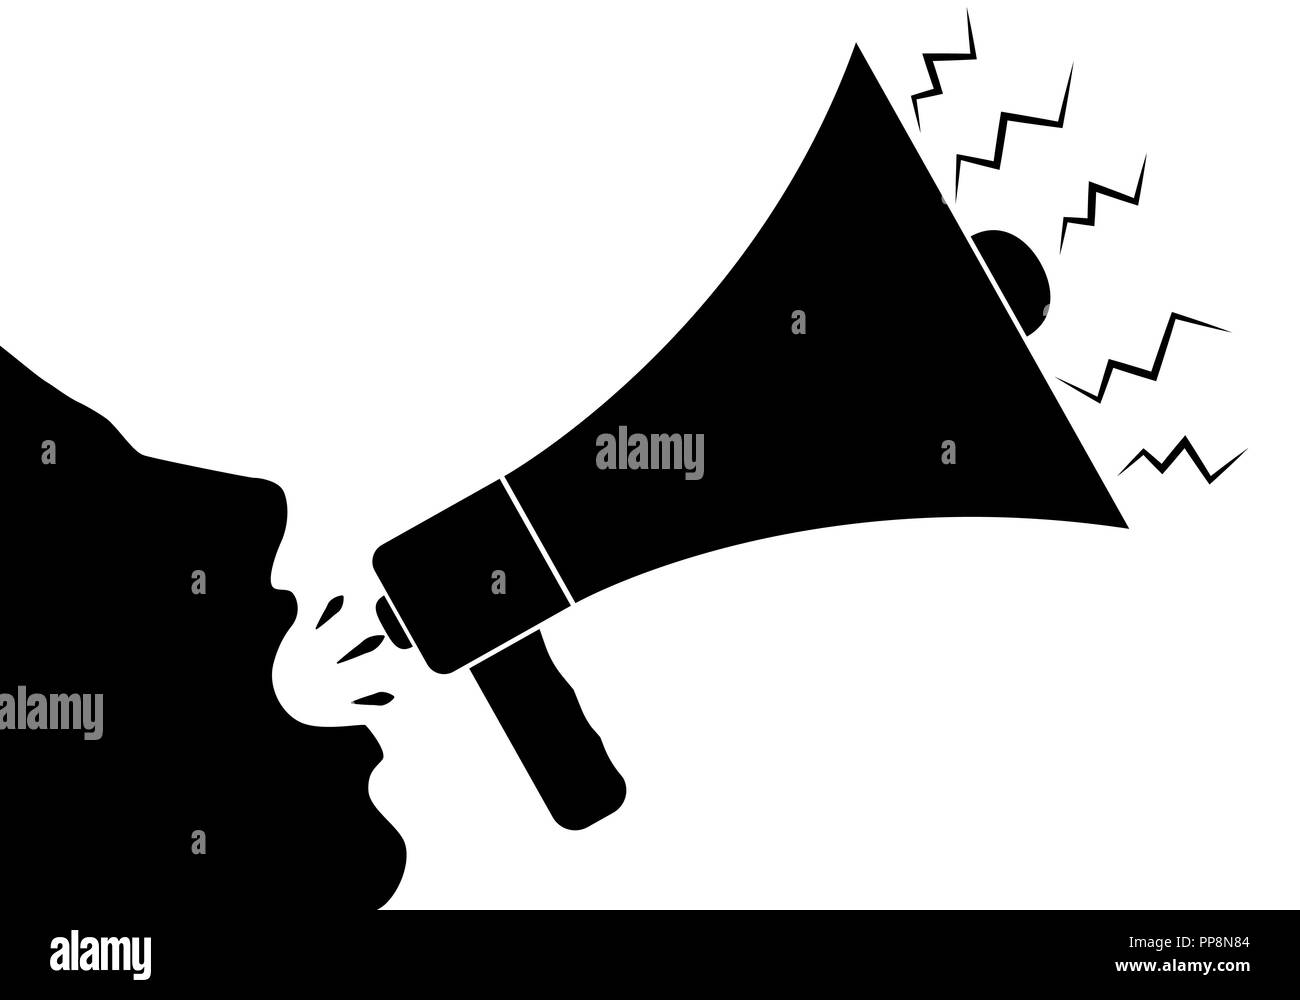 the outline of the face of man shouting through a loudspeaker vector illustration stock vector image art alamy https www alamy com the outline of the face of man shouting through a loudspeaker vector illustration image220239156 html